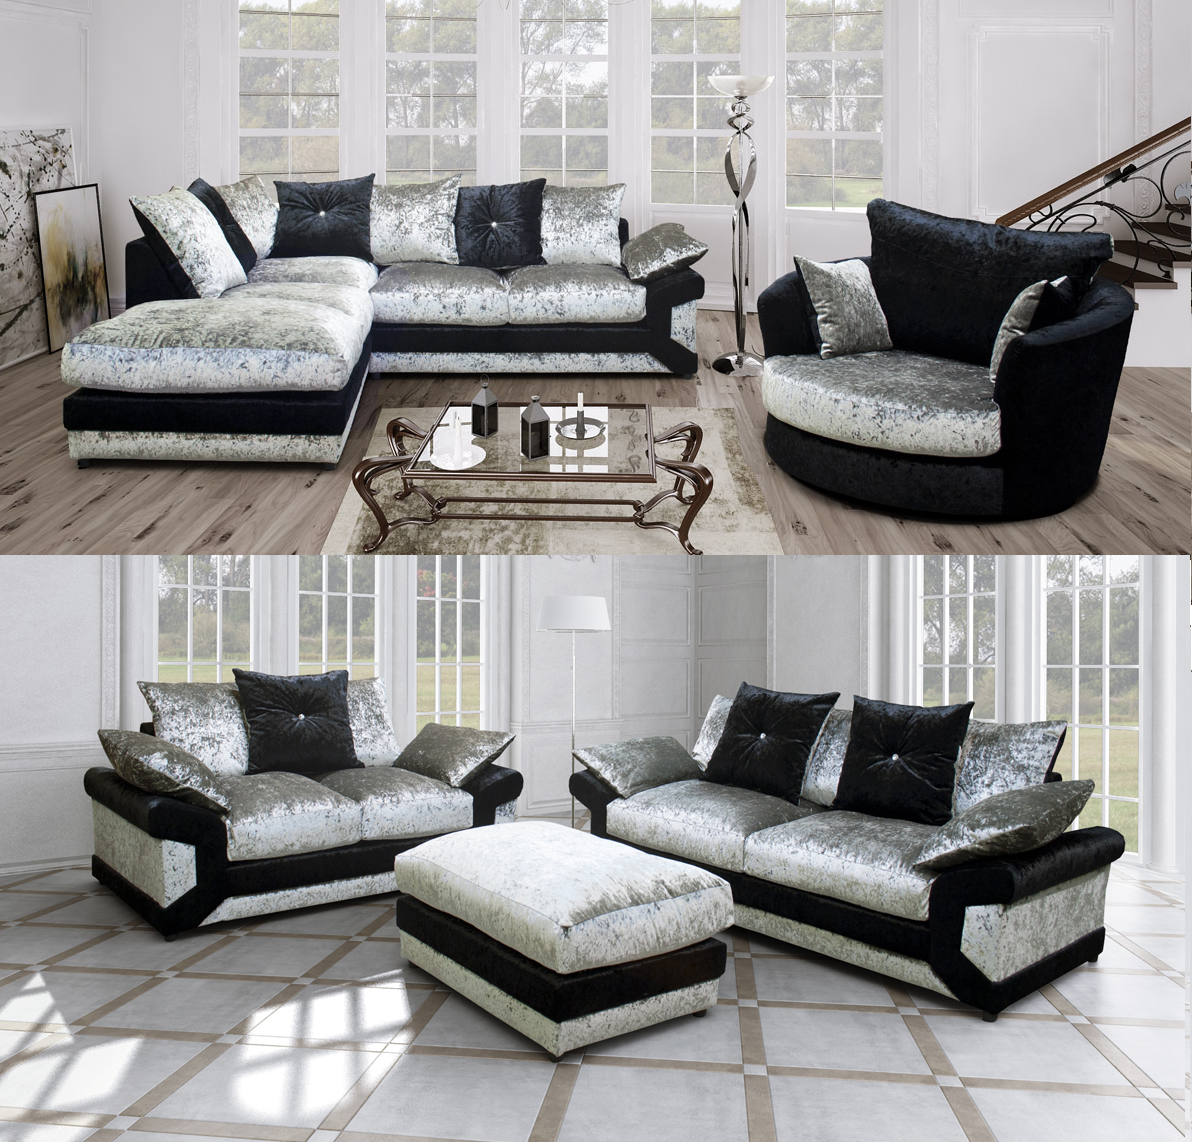 Rihanna Corner Sofa 3 2 Seater Sofa Crushed Velvet Black Silver Ebay Corner Sofa And Swivel Chair Corner Sofa Fabric 2 Seater Corner Sofa